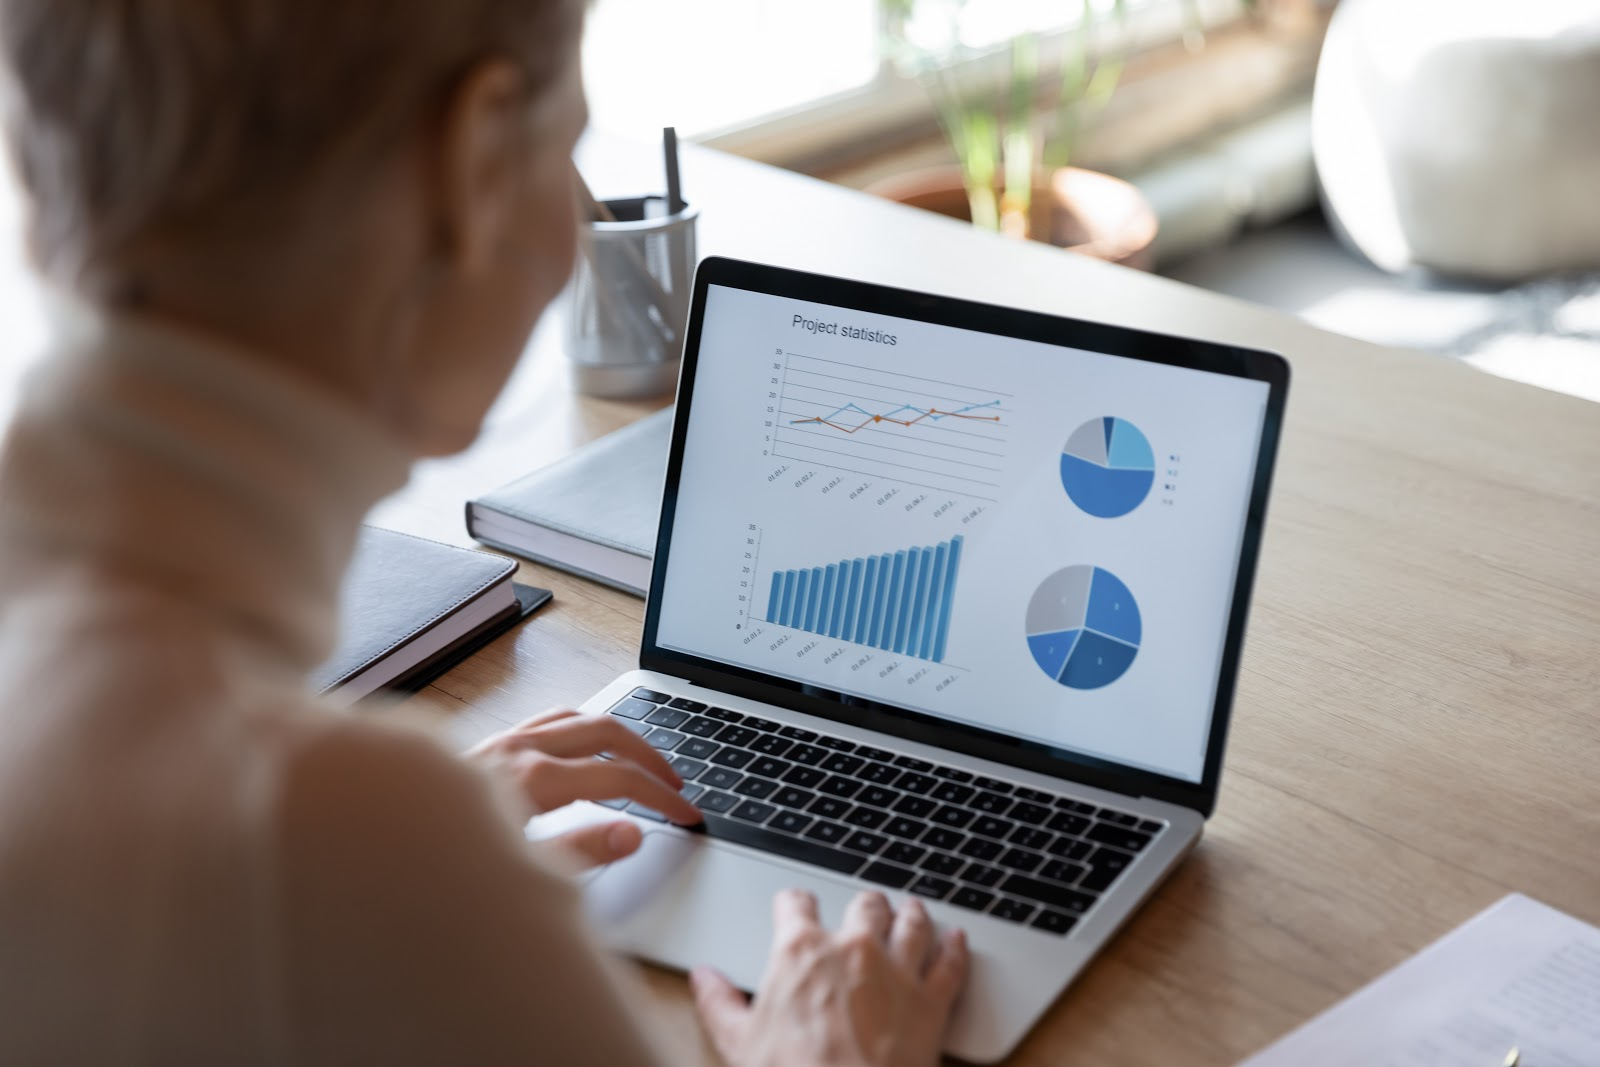 dividend tracker: Woman analyzing graphs on her laptop